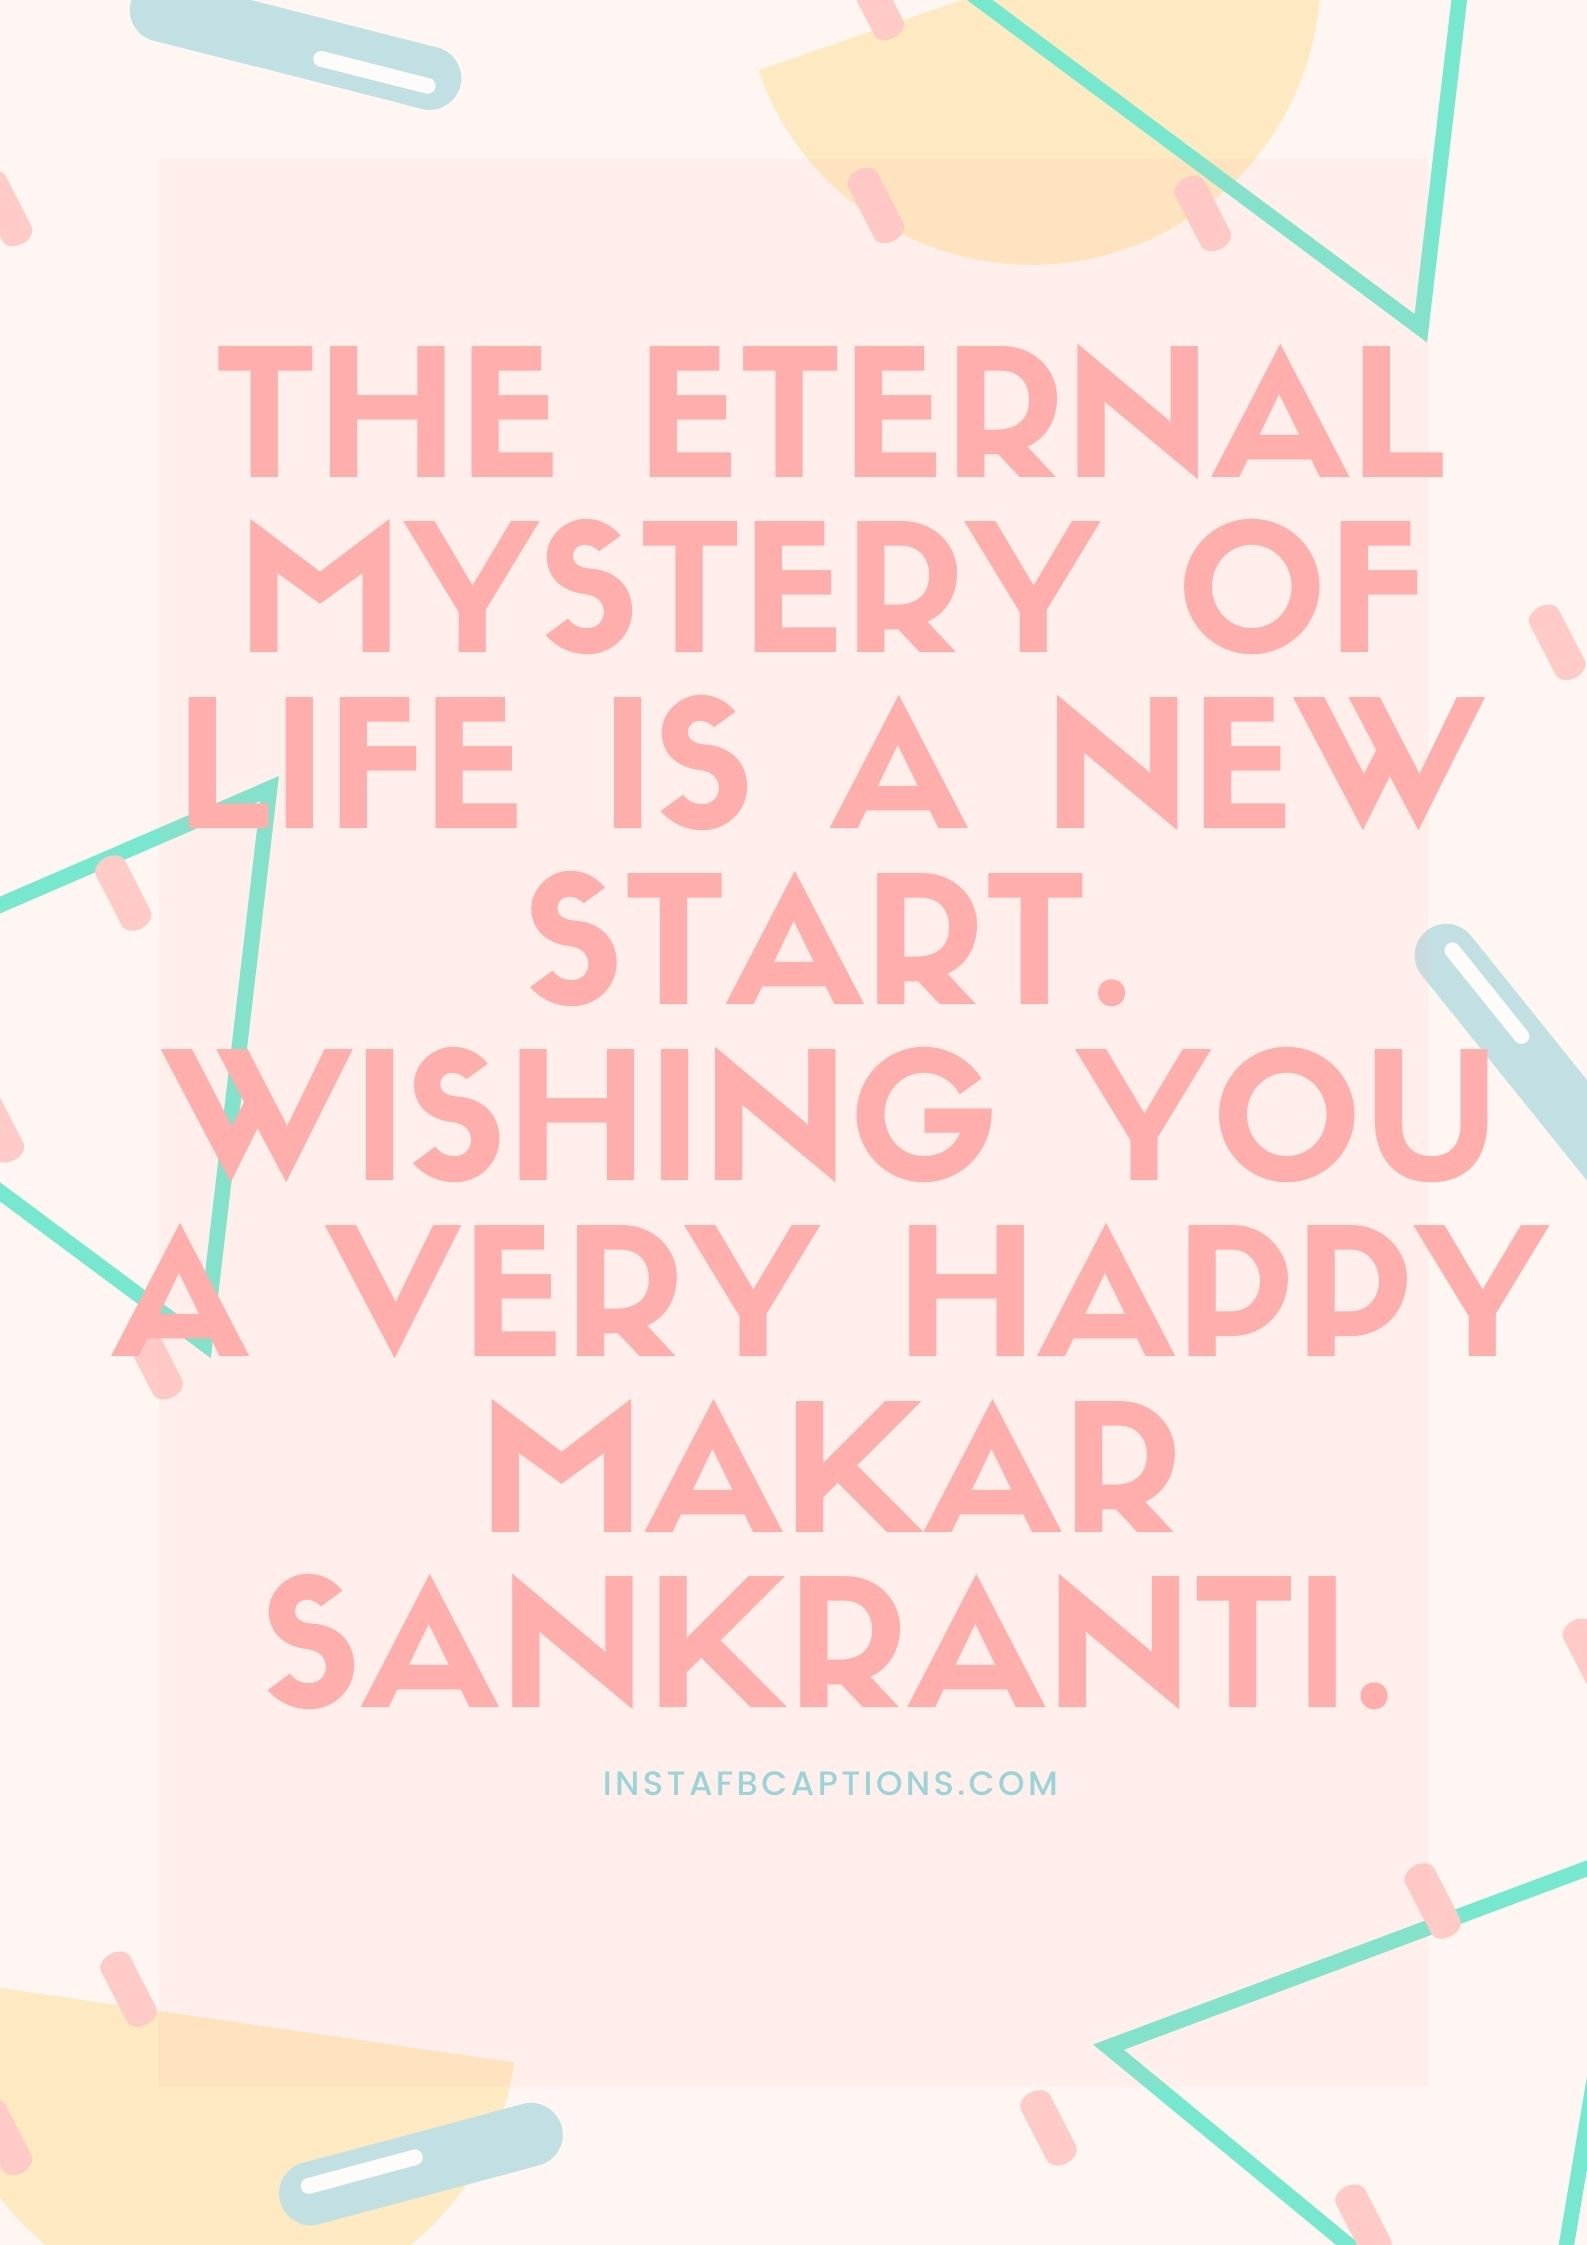 Makar Sankranti Whatsapp Status  - Makar Sankranti Whatsapp Status - MAKAR SANKRANTI Instagram Captions and Quotes 2021